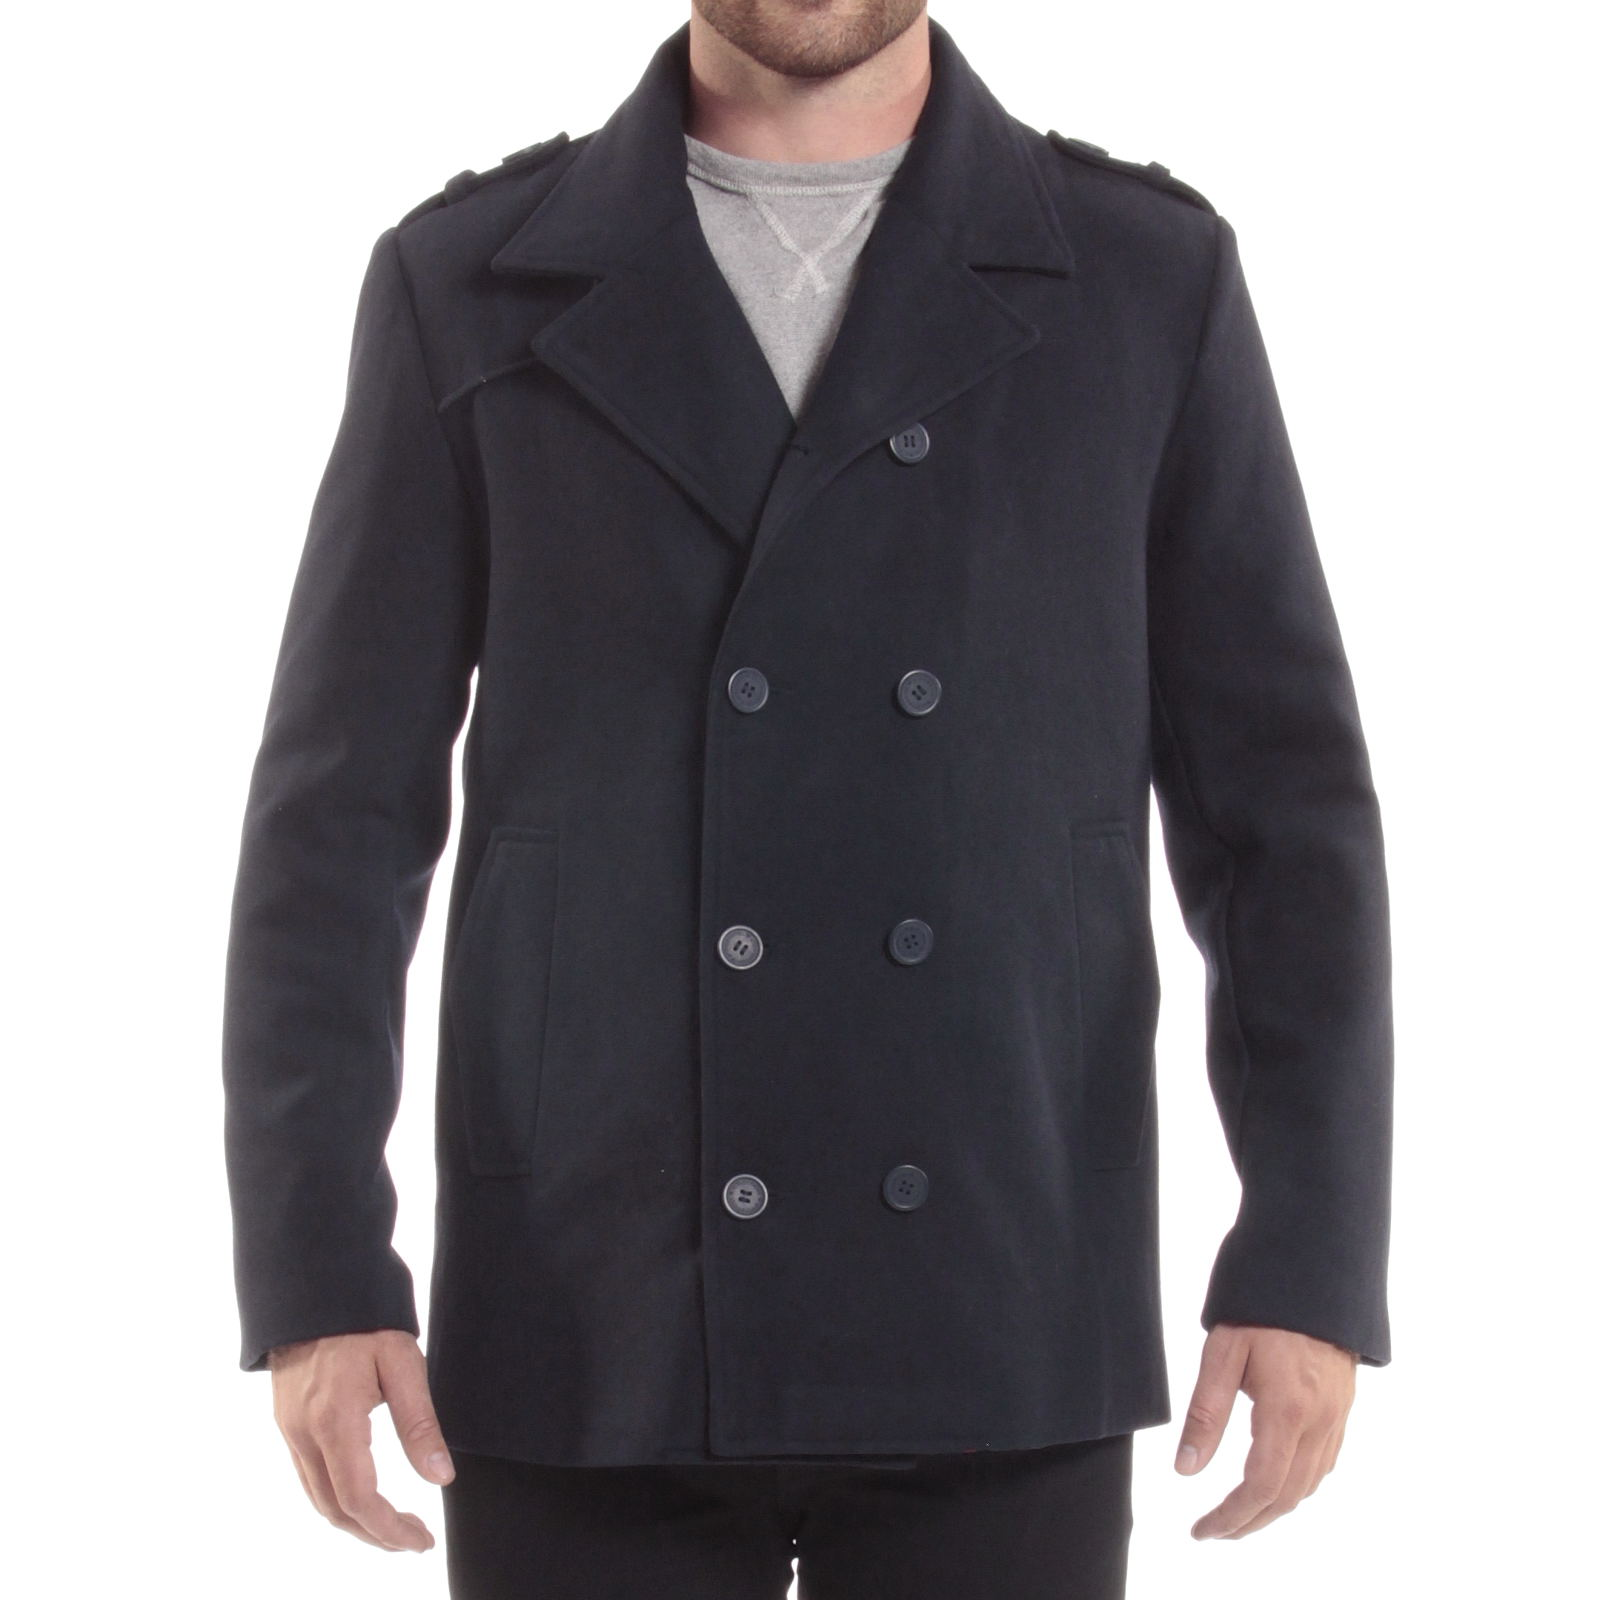 Double breasted wool mens pea coat